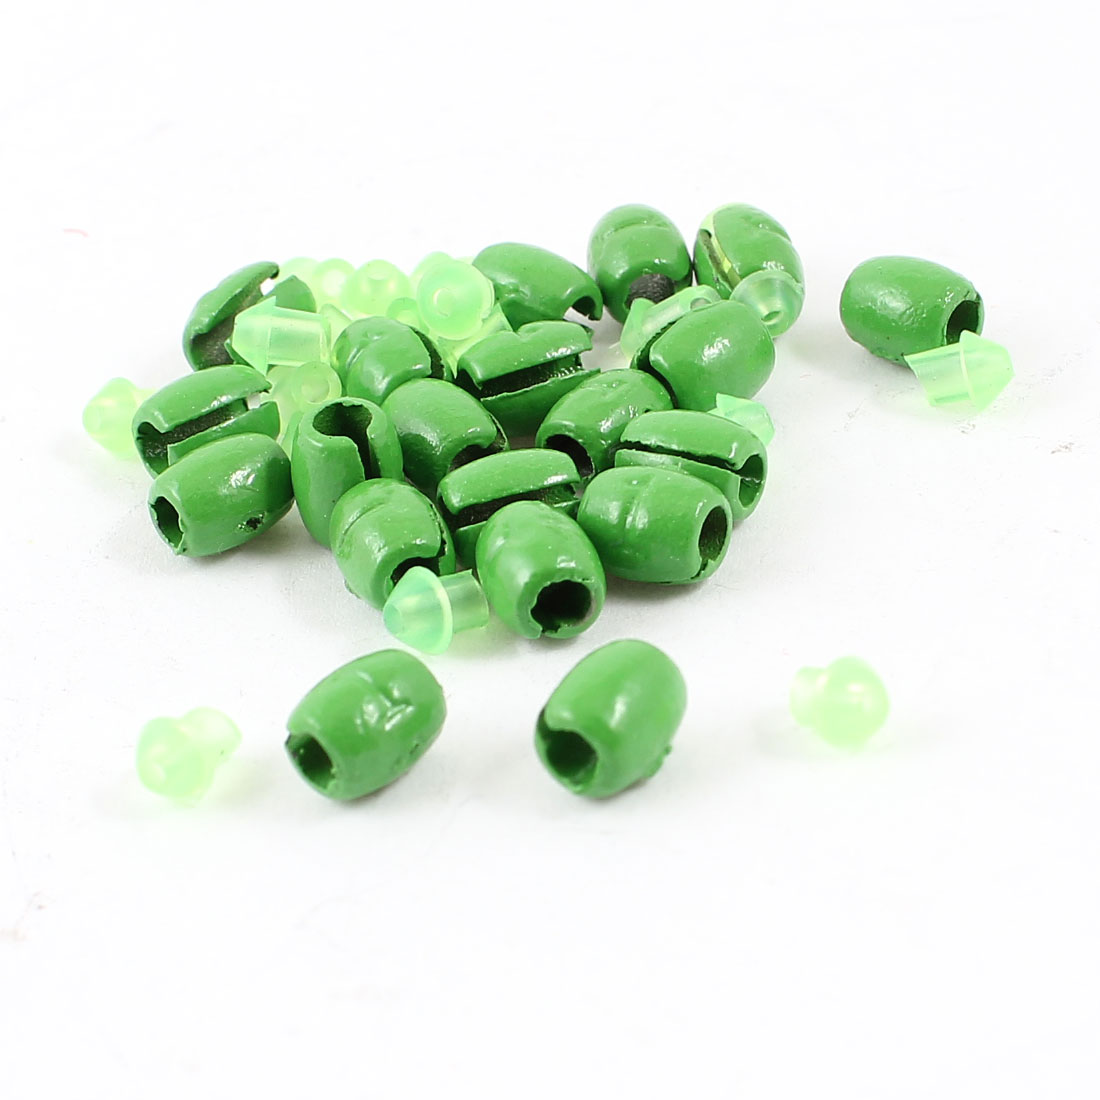 20pcs Oval Shape Lead Split Shots Fishing Line Sinkers Green 6mm x 11mm 1g Per Piece